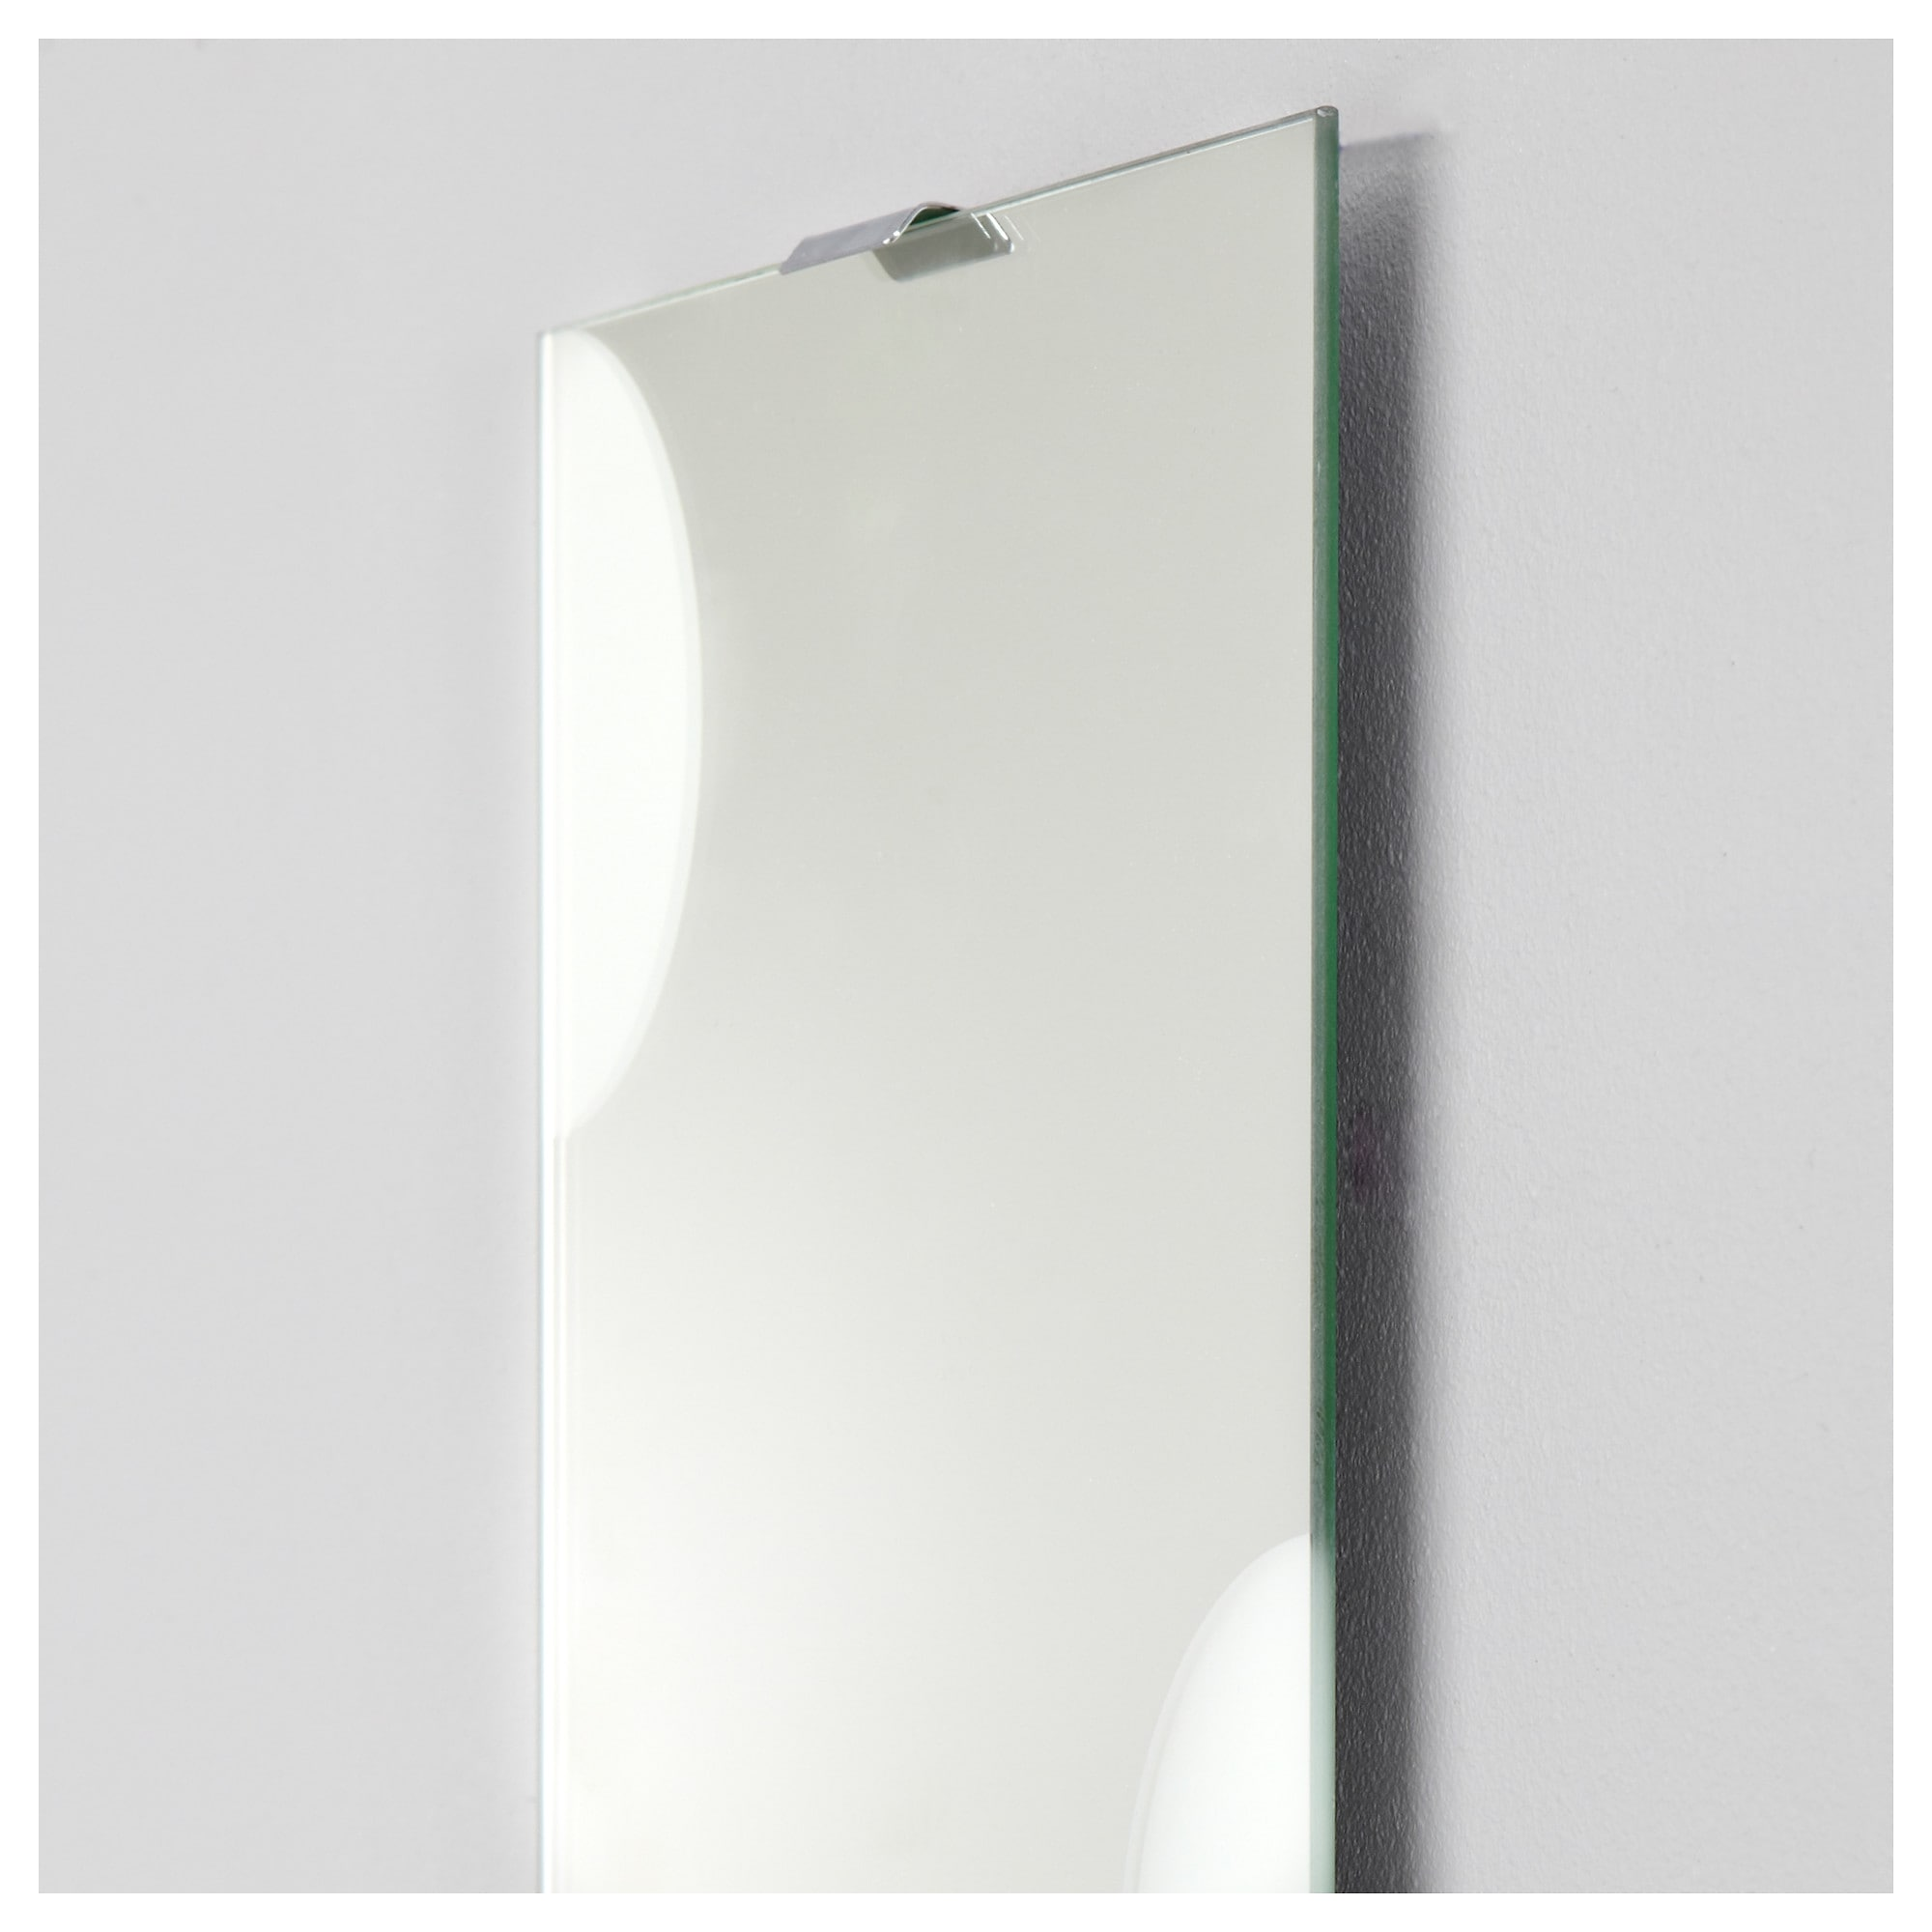 Stickers miroir ikea finest skogsvg miroir ikea with for Miroir a coller ikea